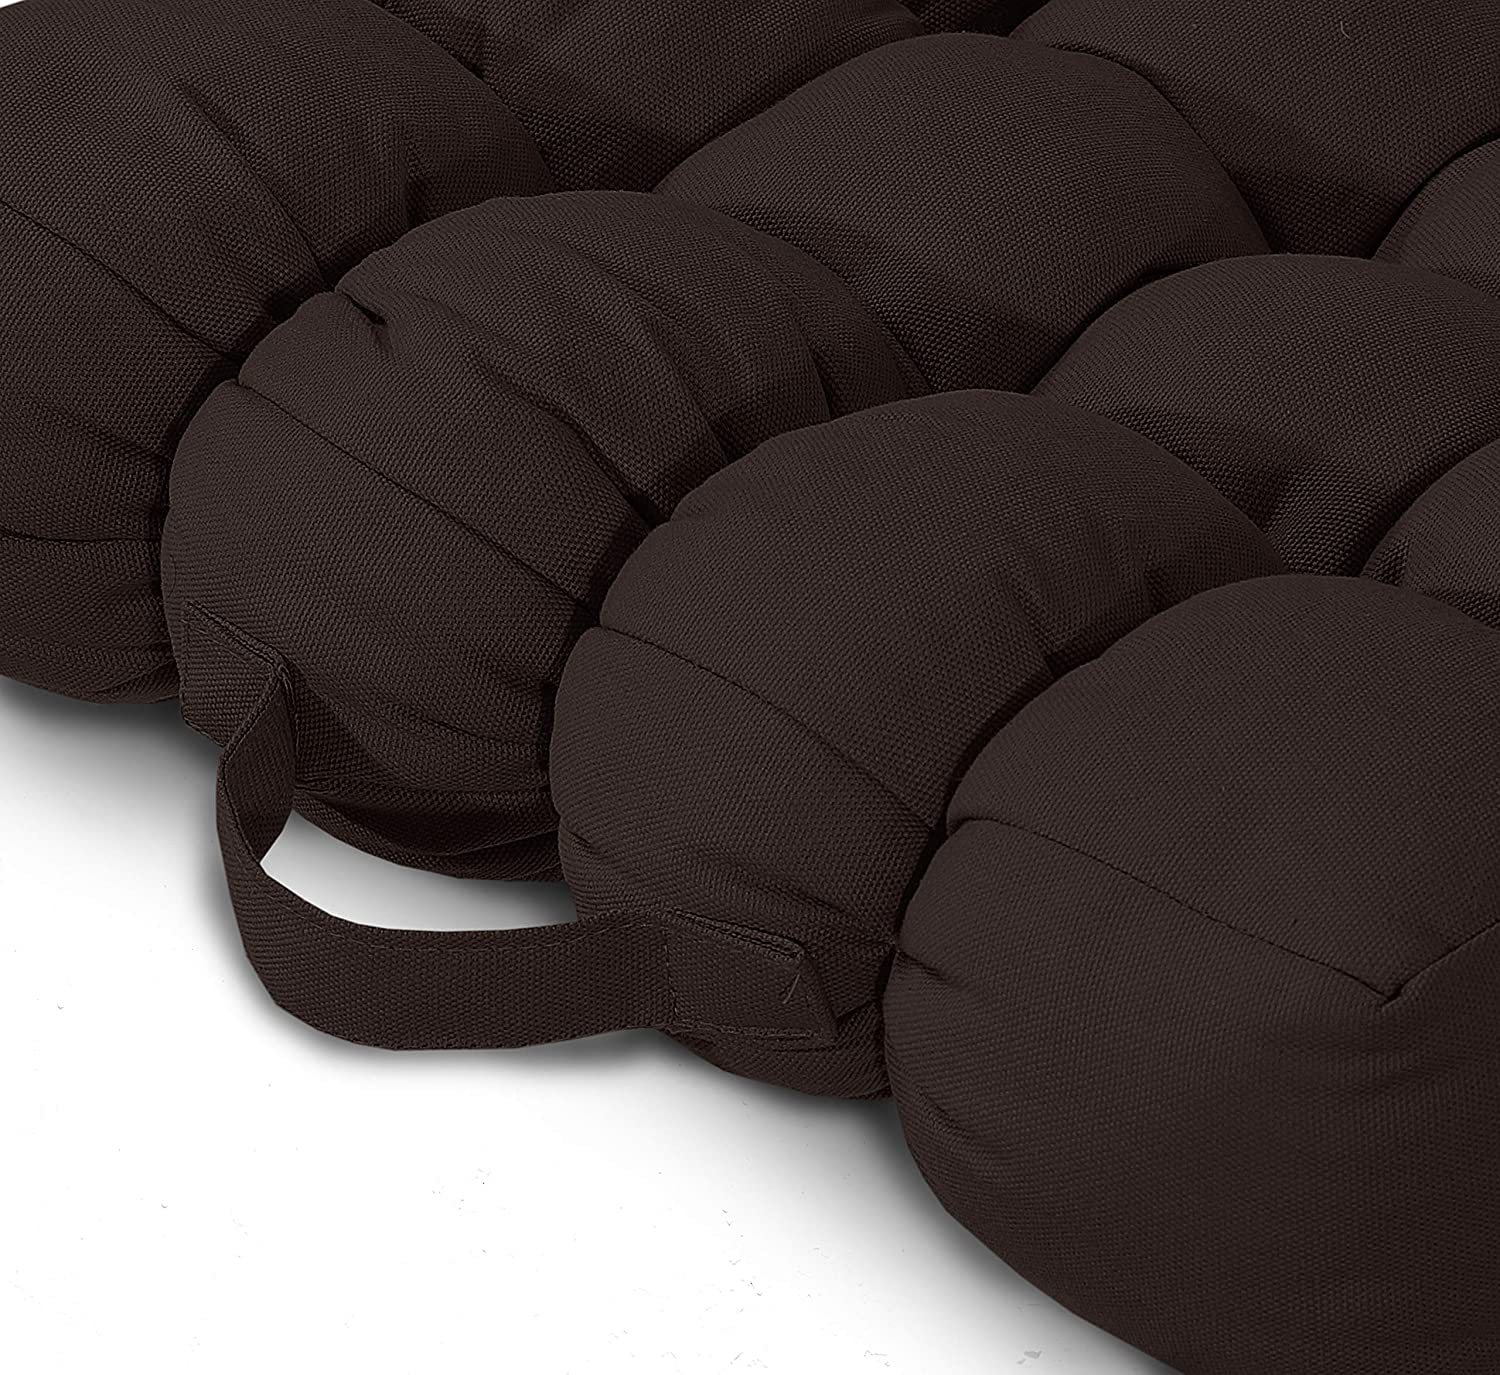 Postoperative and Pregnancy Black, 1 10 cm Thick Square Seat Pads Soft Touch HollowFibre Filling Cushion For The Elderly E4Emporium Luxurious Supportive Armchair Booster Cushion